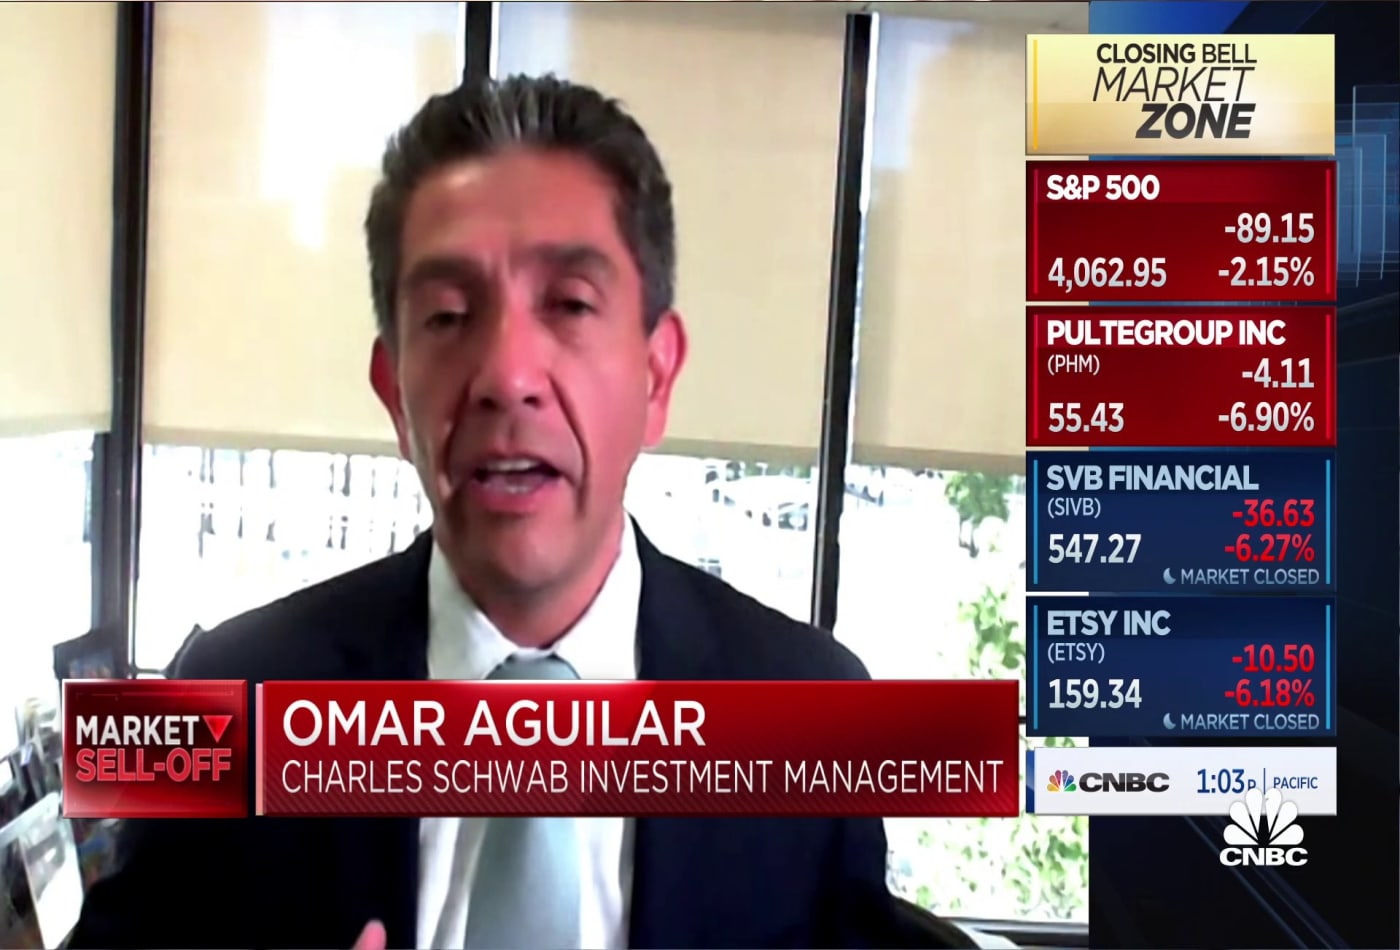 Charles Schwab's Omar Aguilar on the correction in the market